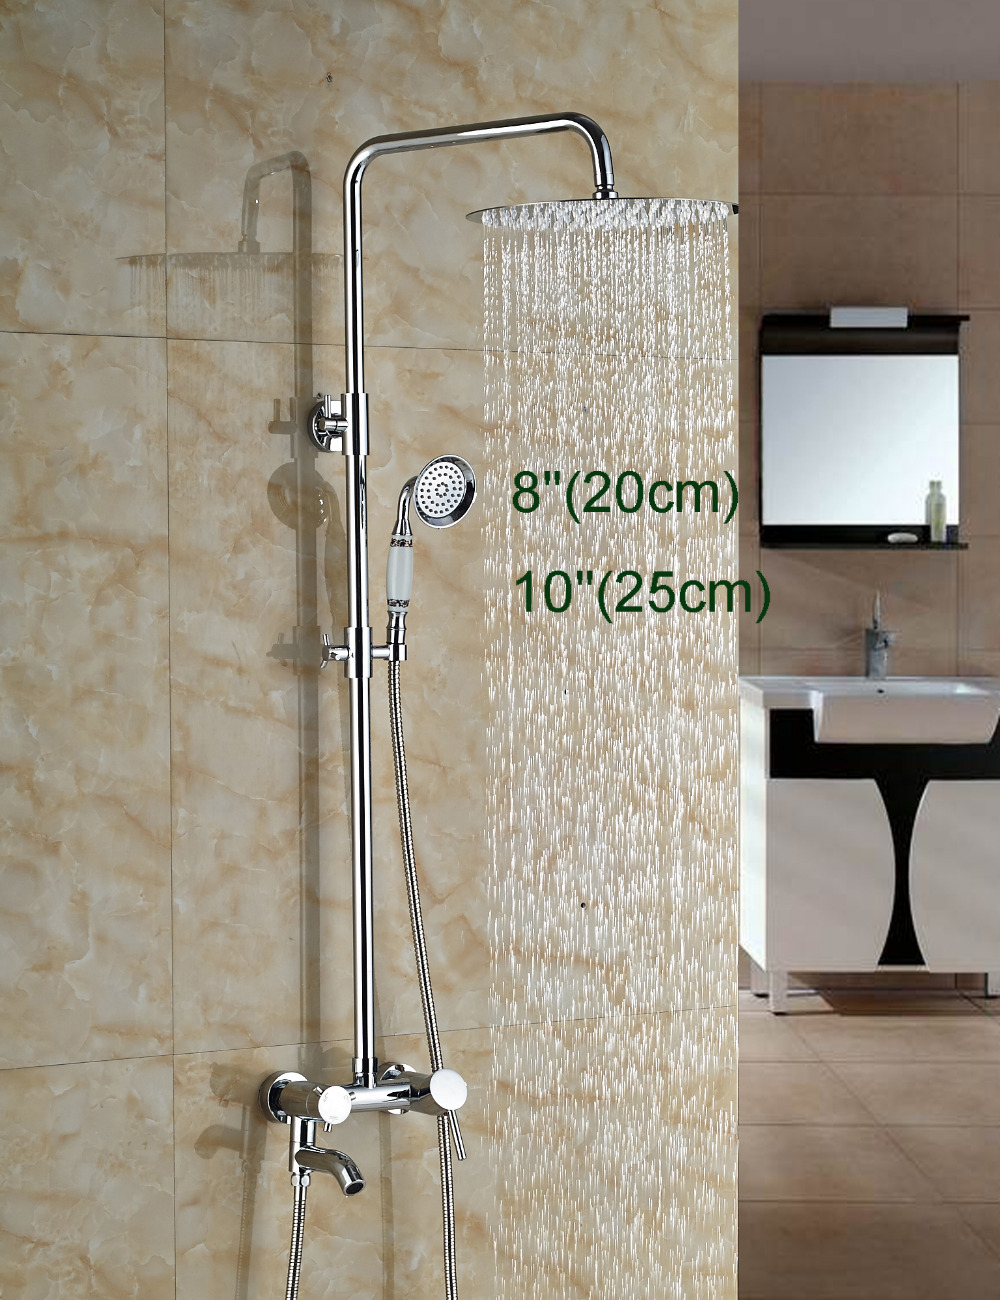 Wholesale And Retail Manufactory Sell Wall Mounted Shower Faucet Ultrathin Round Shower Head Tub Spout Valve Mixer Tap Hand Unit wholesale and retail wall mounted thermostatic valve mixer tap shower faucet 8 sprayer hand shower